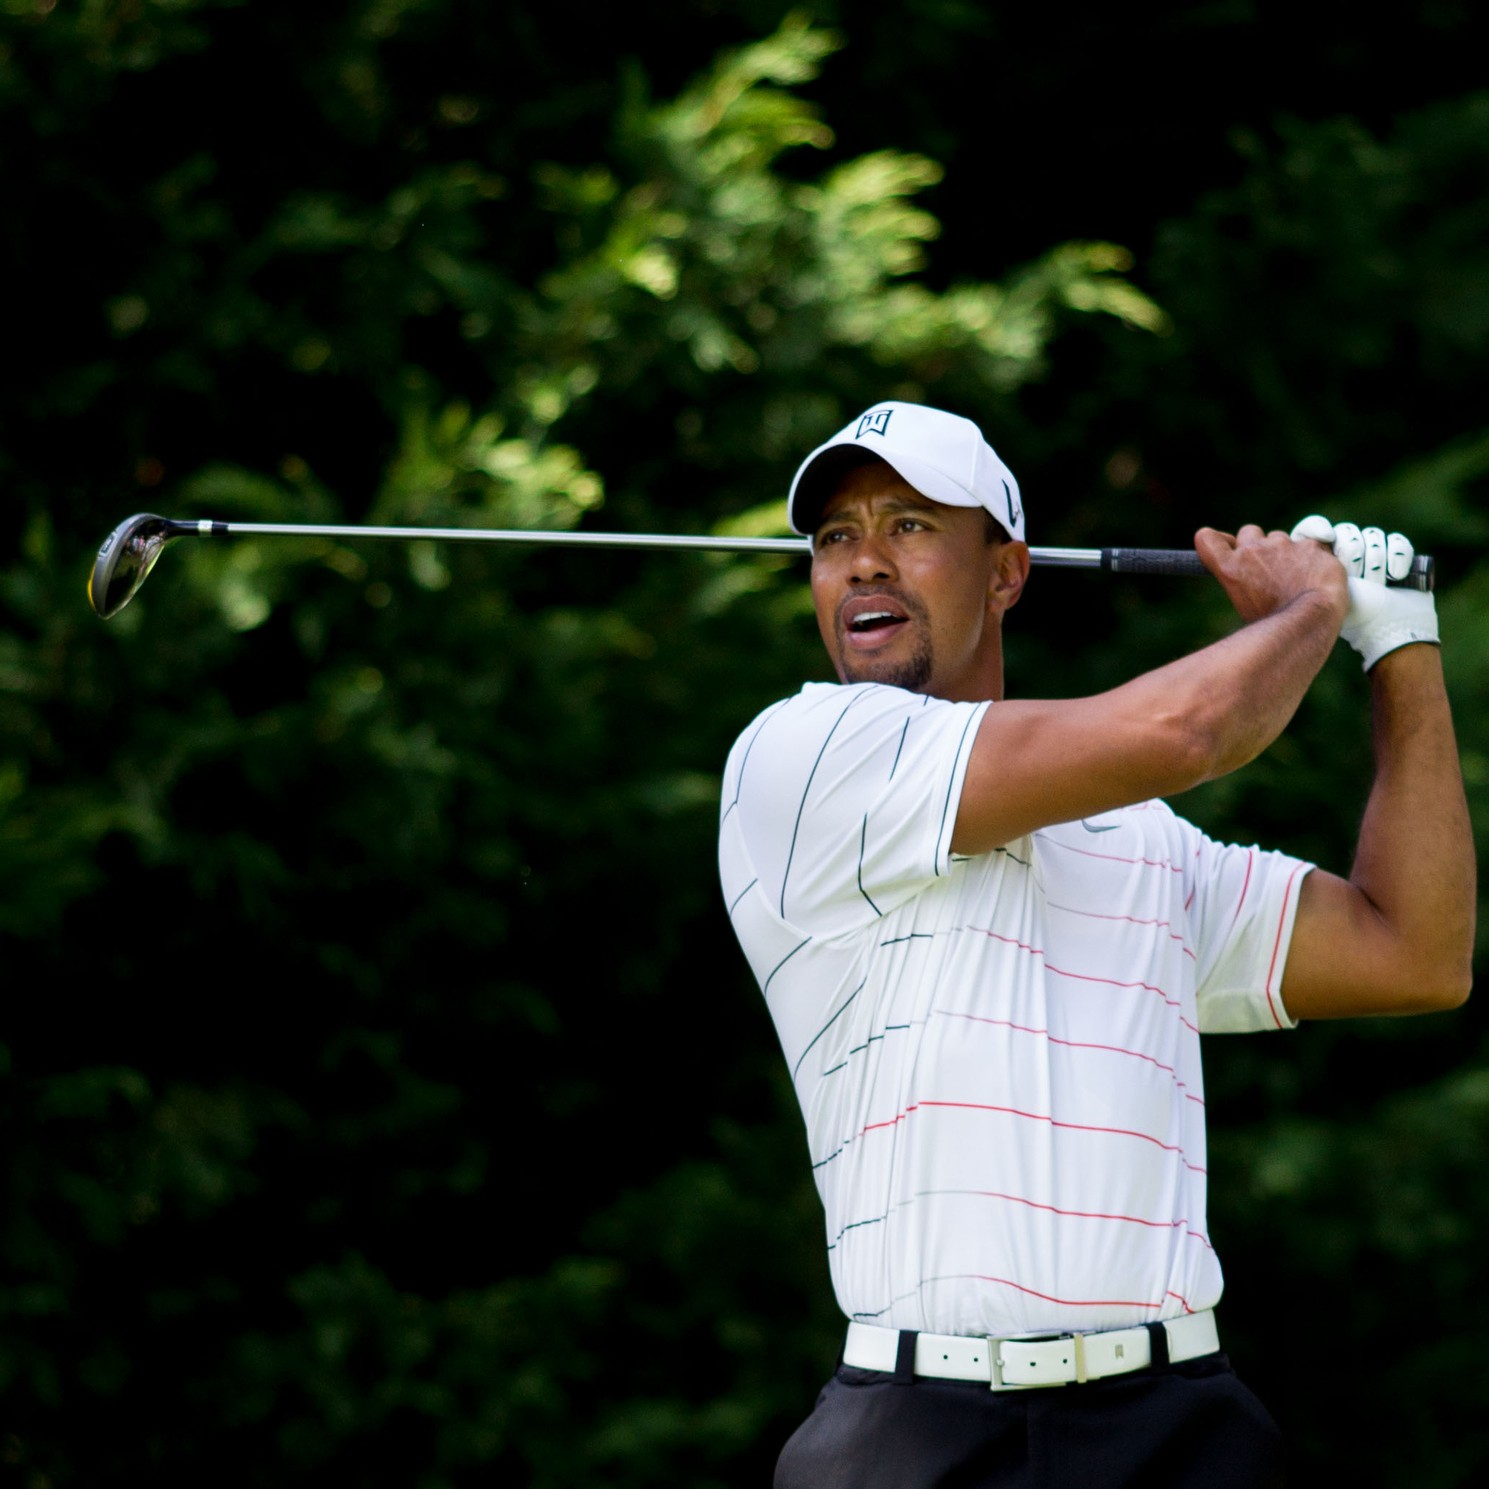 espn u0026 39 s british open coverage will give you all the tiger